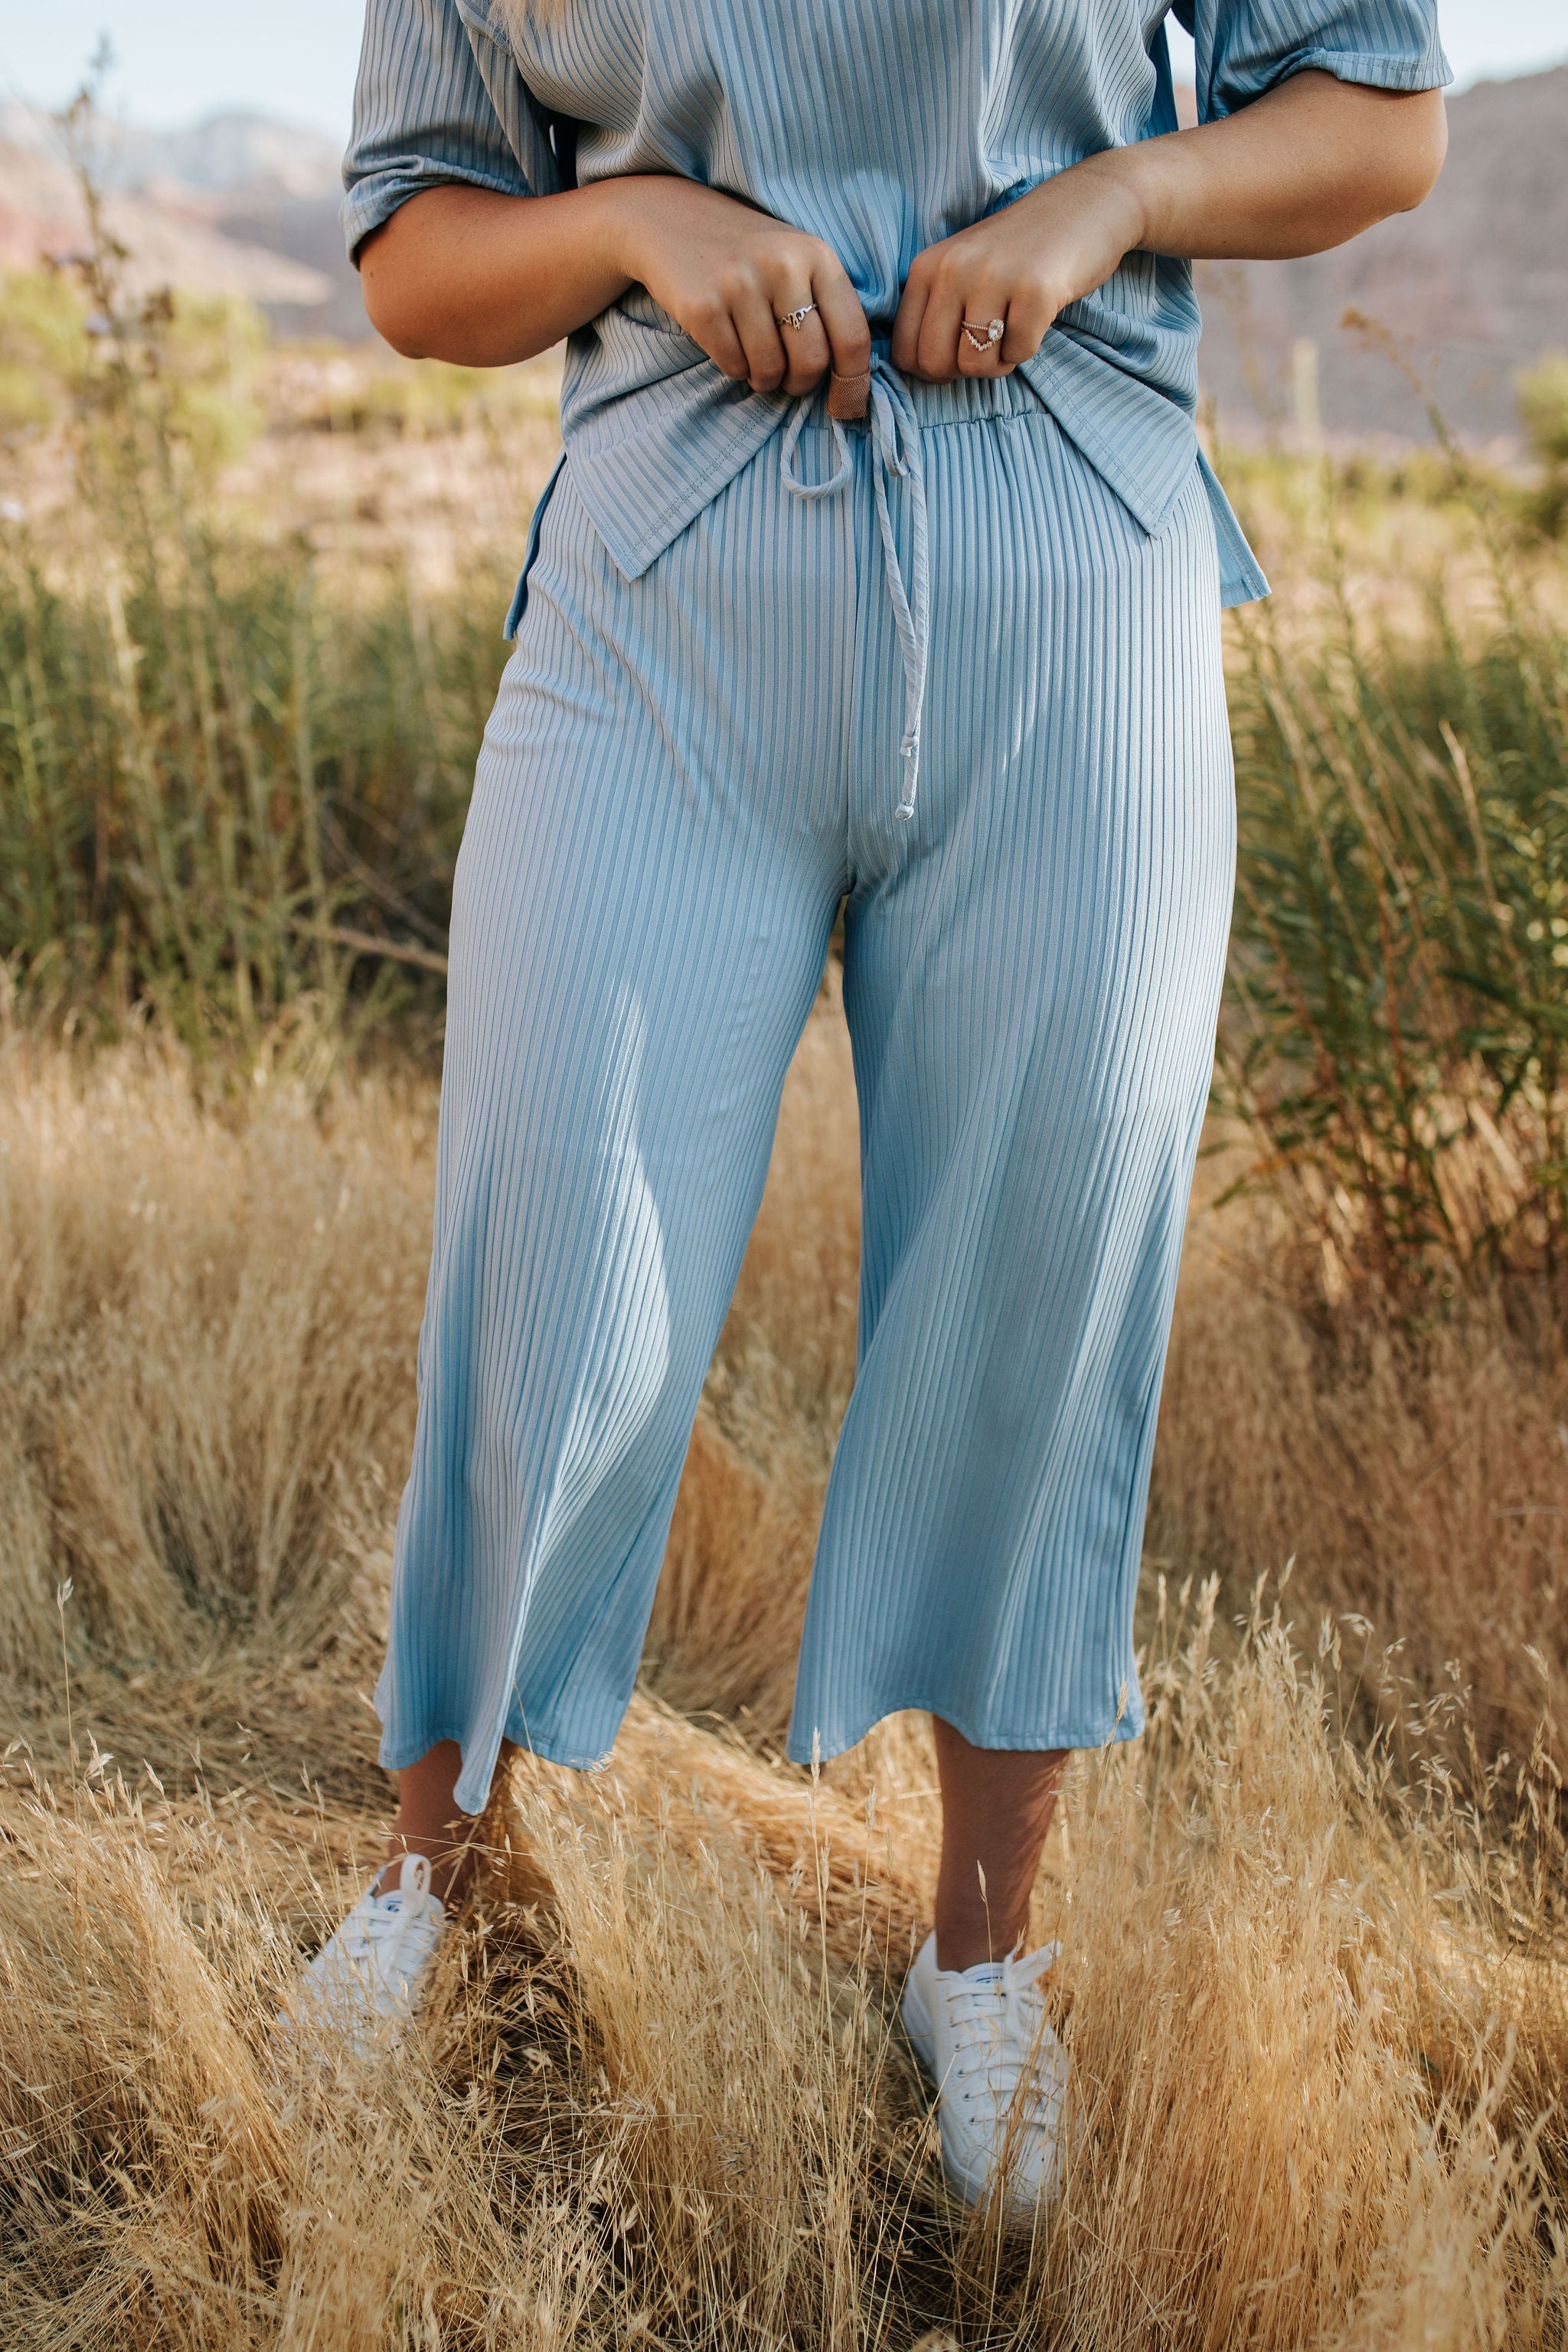 THE REECE RIBBED JOGGER SET IN SKY BLUE